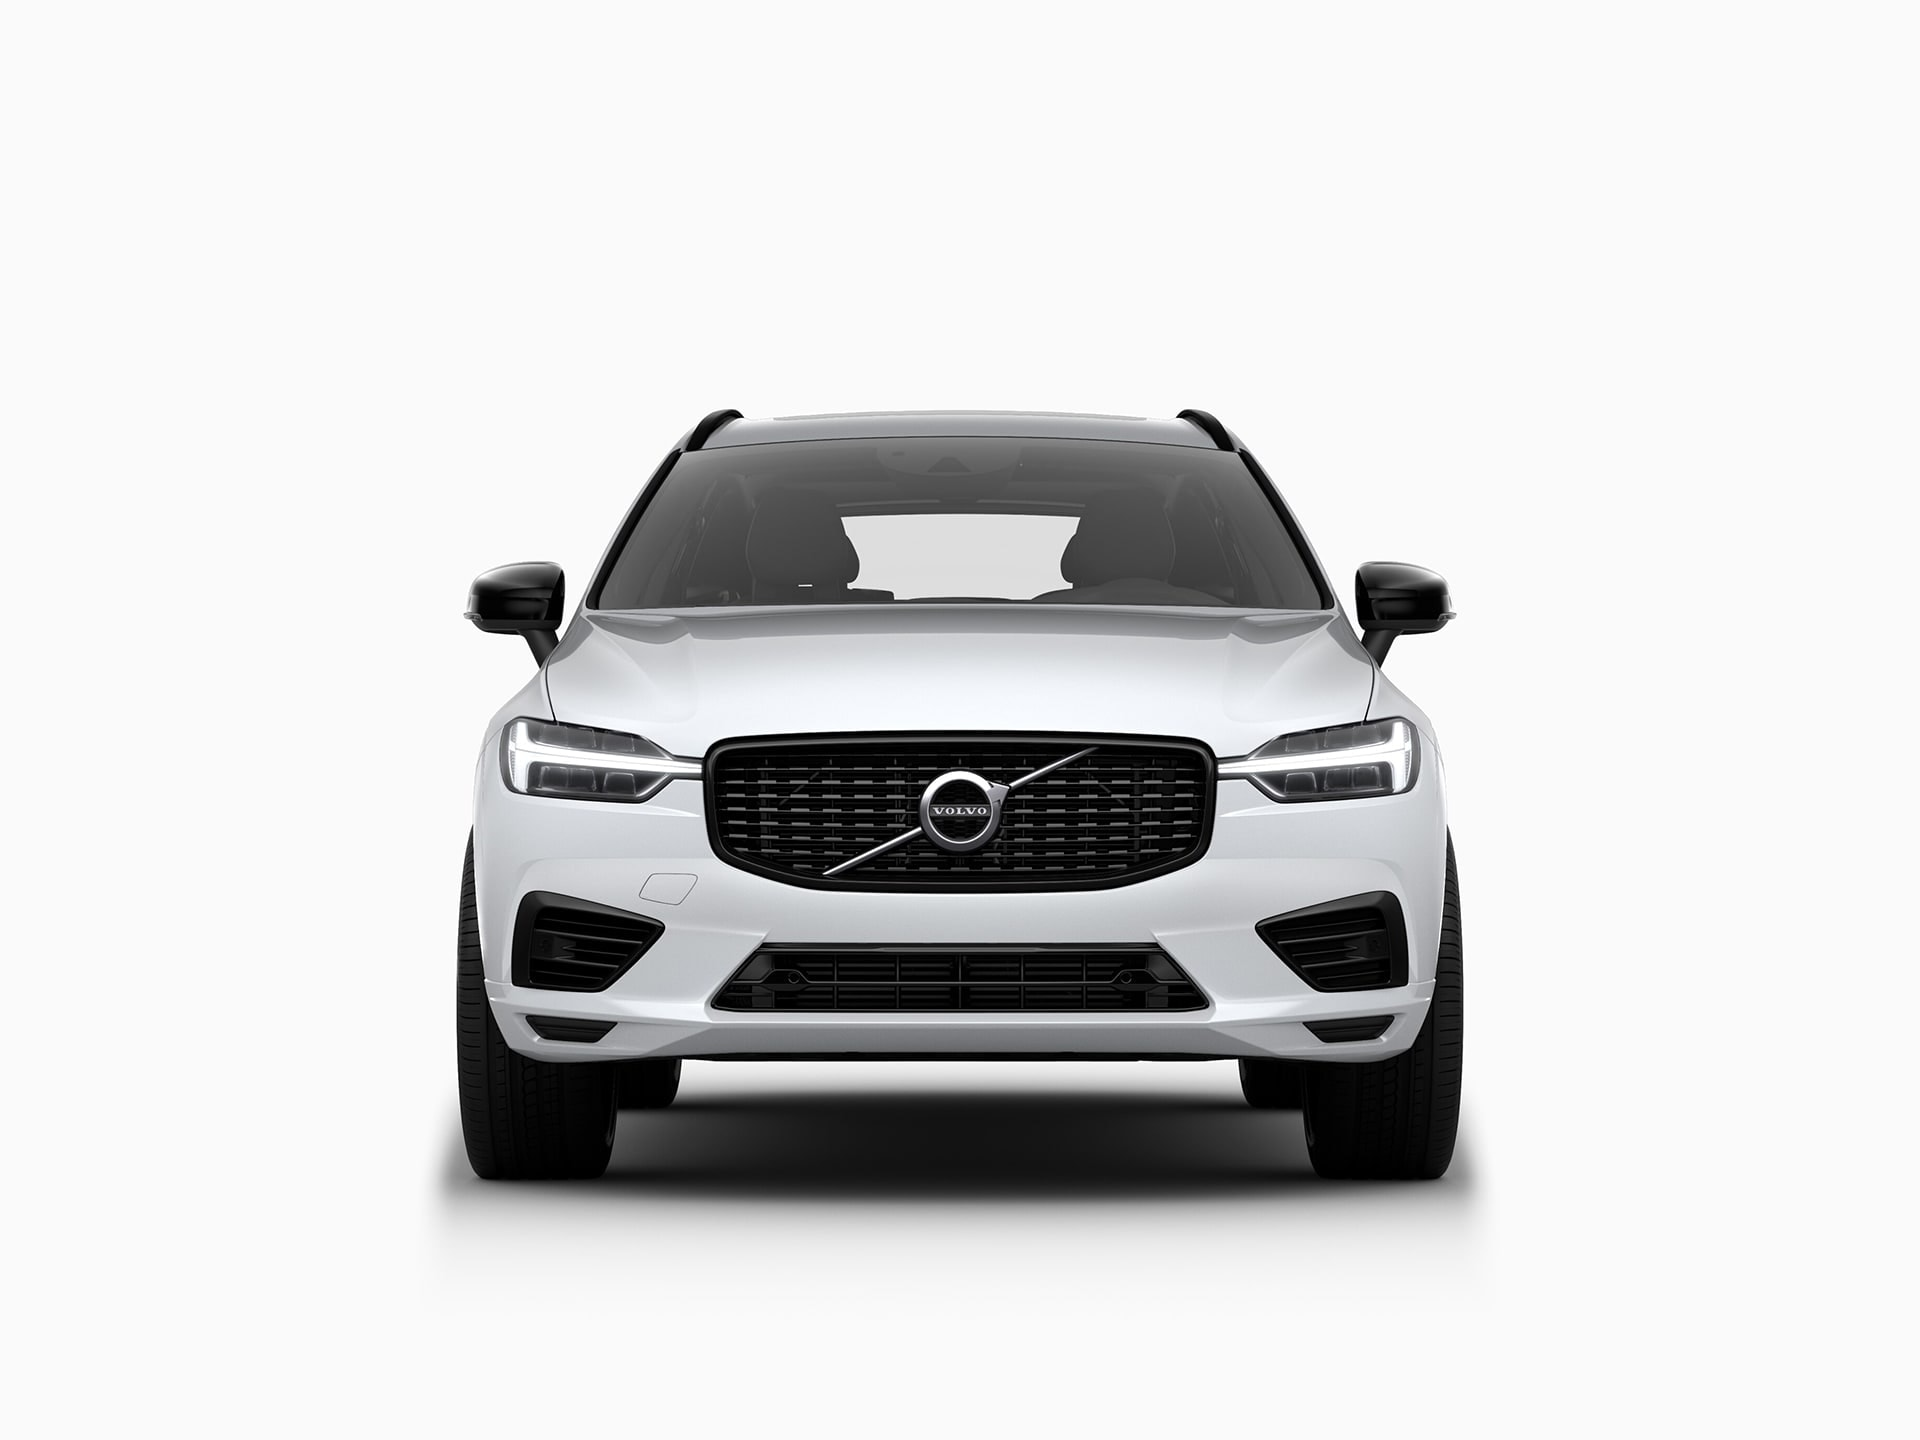 The front of a Volvo XC60 Recharge plug-in hybrid SUV.